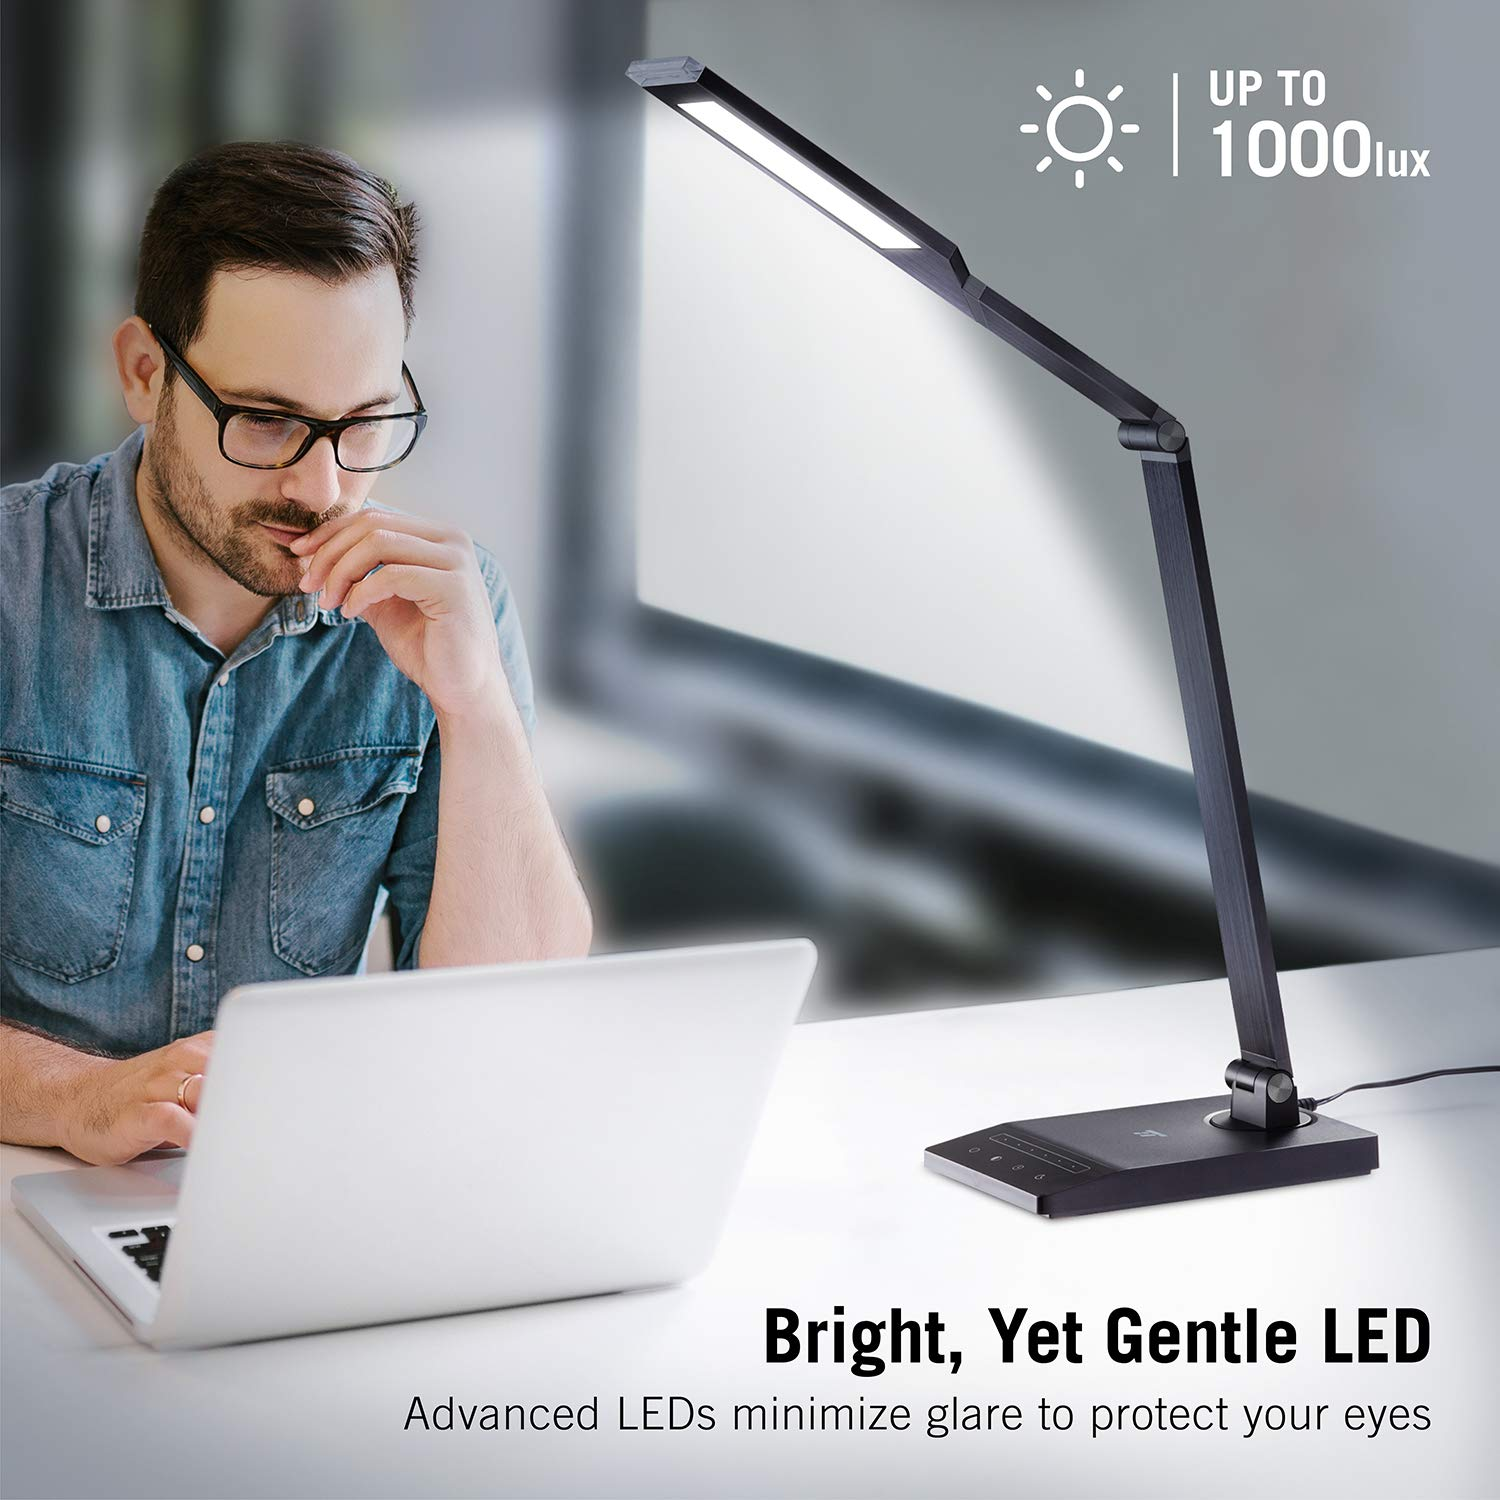 Usb Port Office Lamp With 1000 Lux Bright Yet Eye Caring Led Panel And 5 Color Modes Taotronics Tt Dl048 Desk 1 Hour Auto Timer And Nightlight Function Desk Lamps Kurrasports Office Products